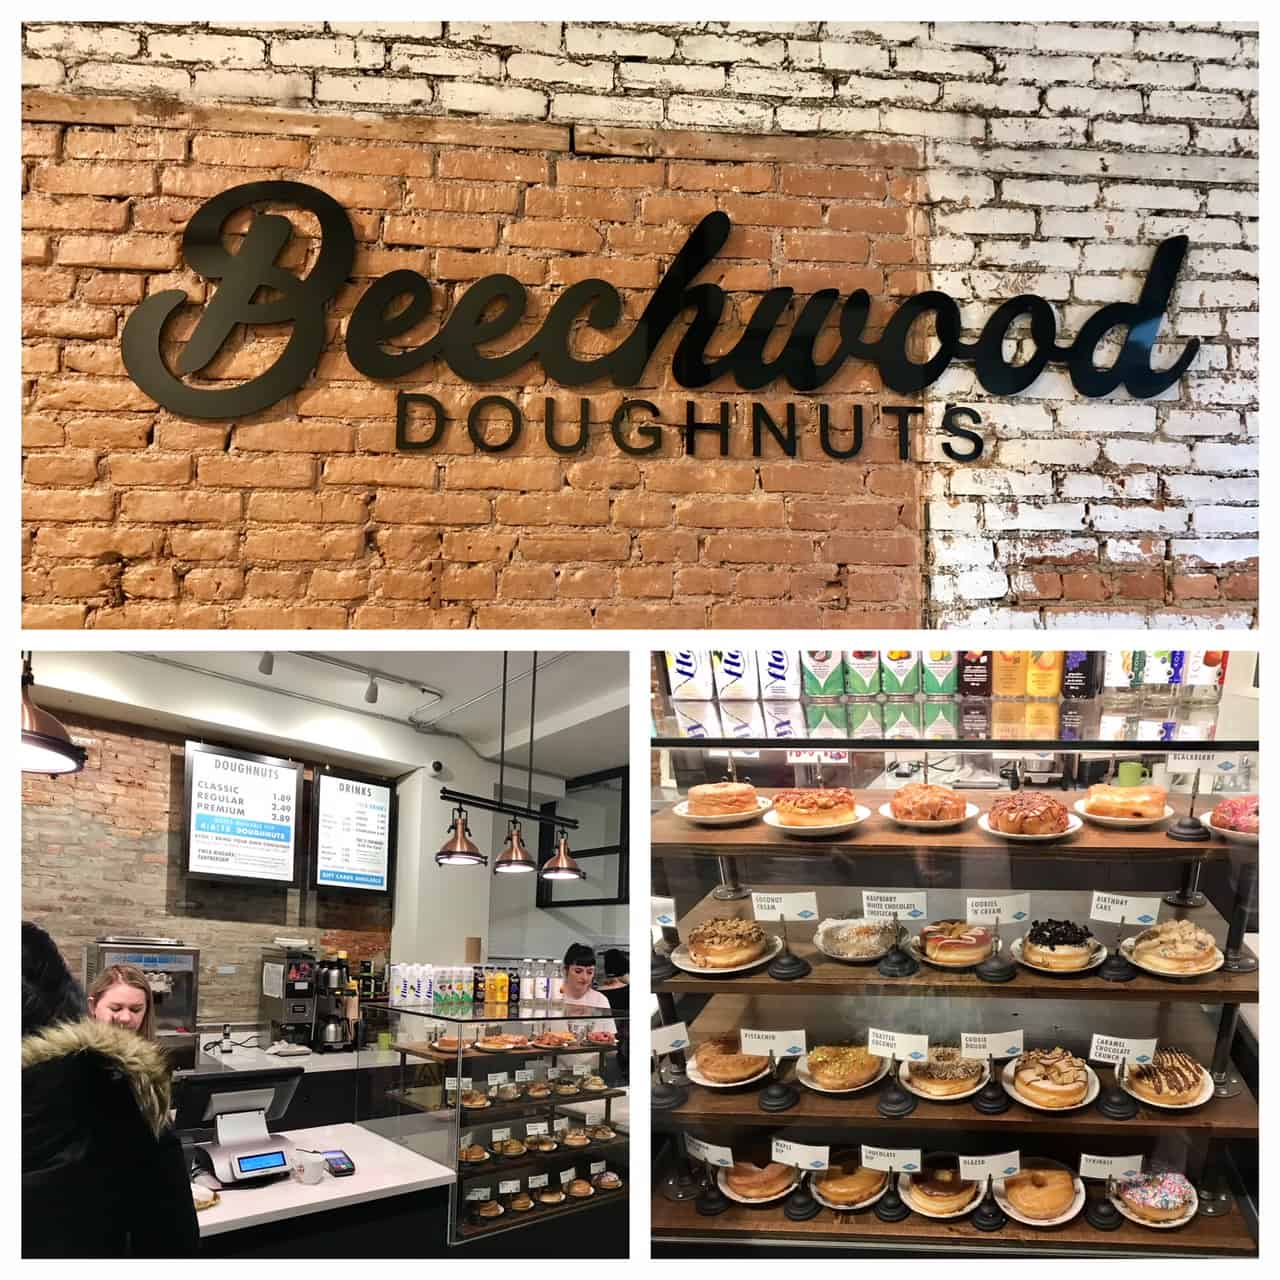 Collage of images from Beechwood Doughnuts